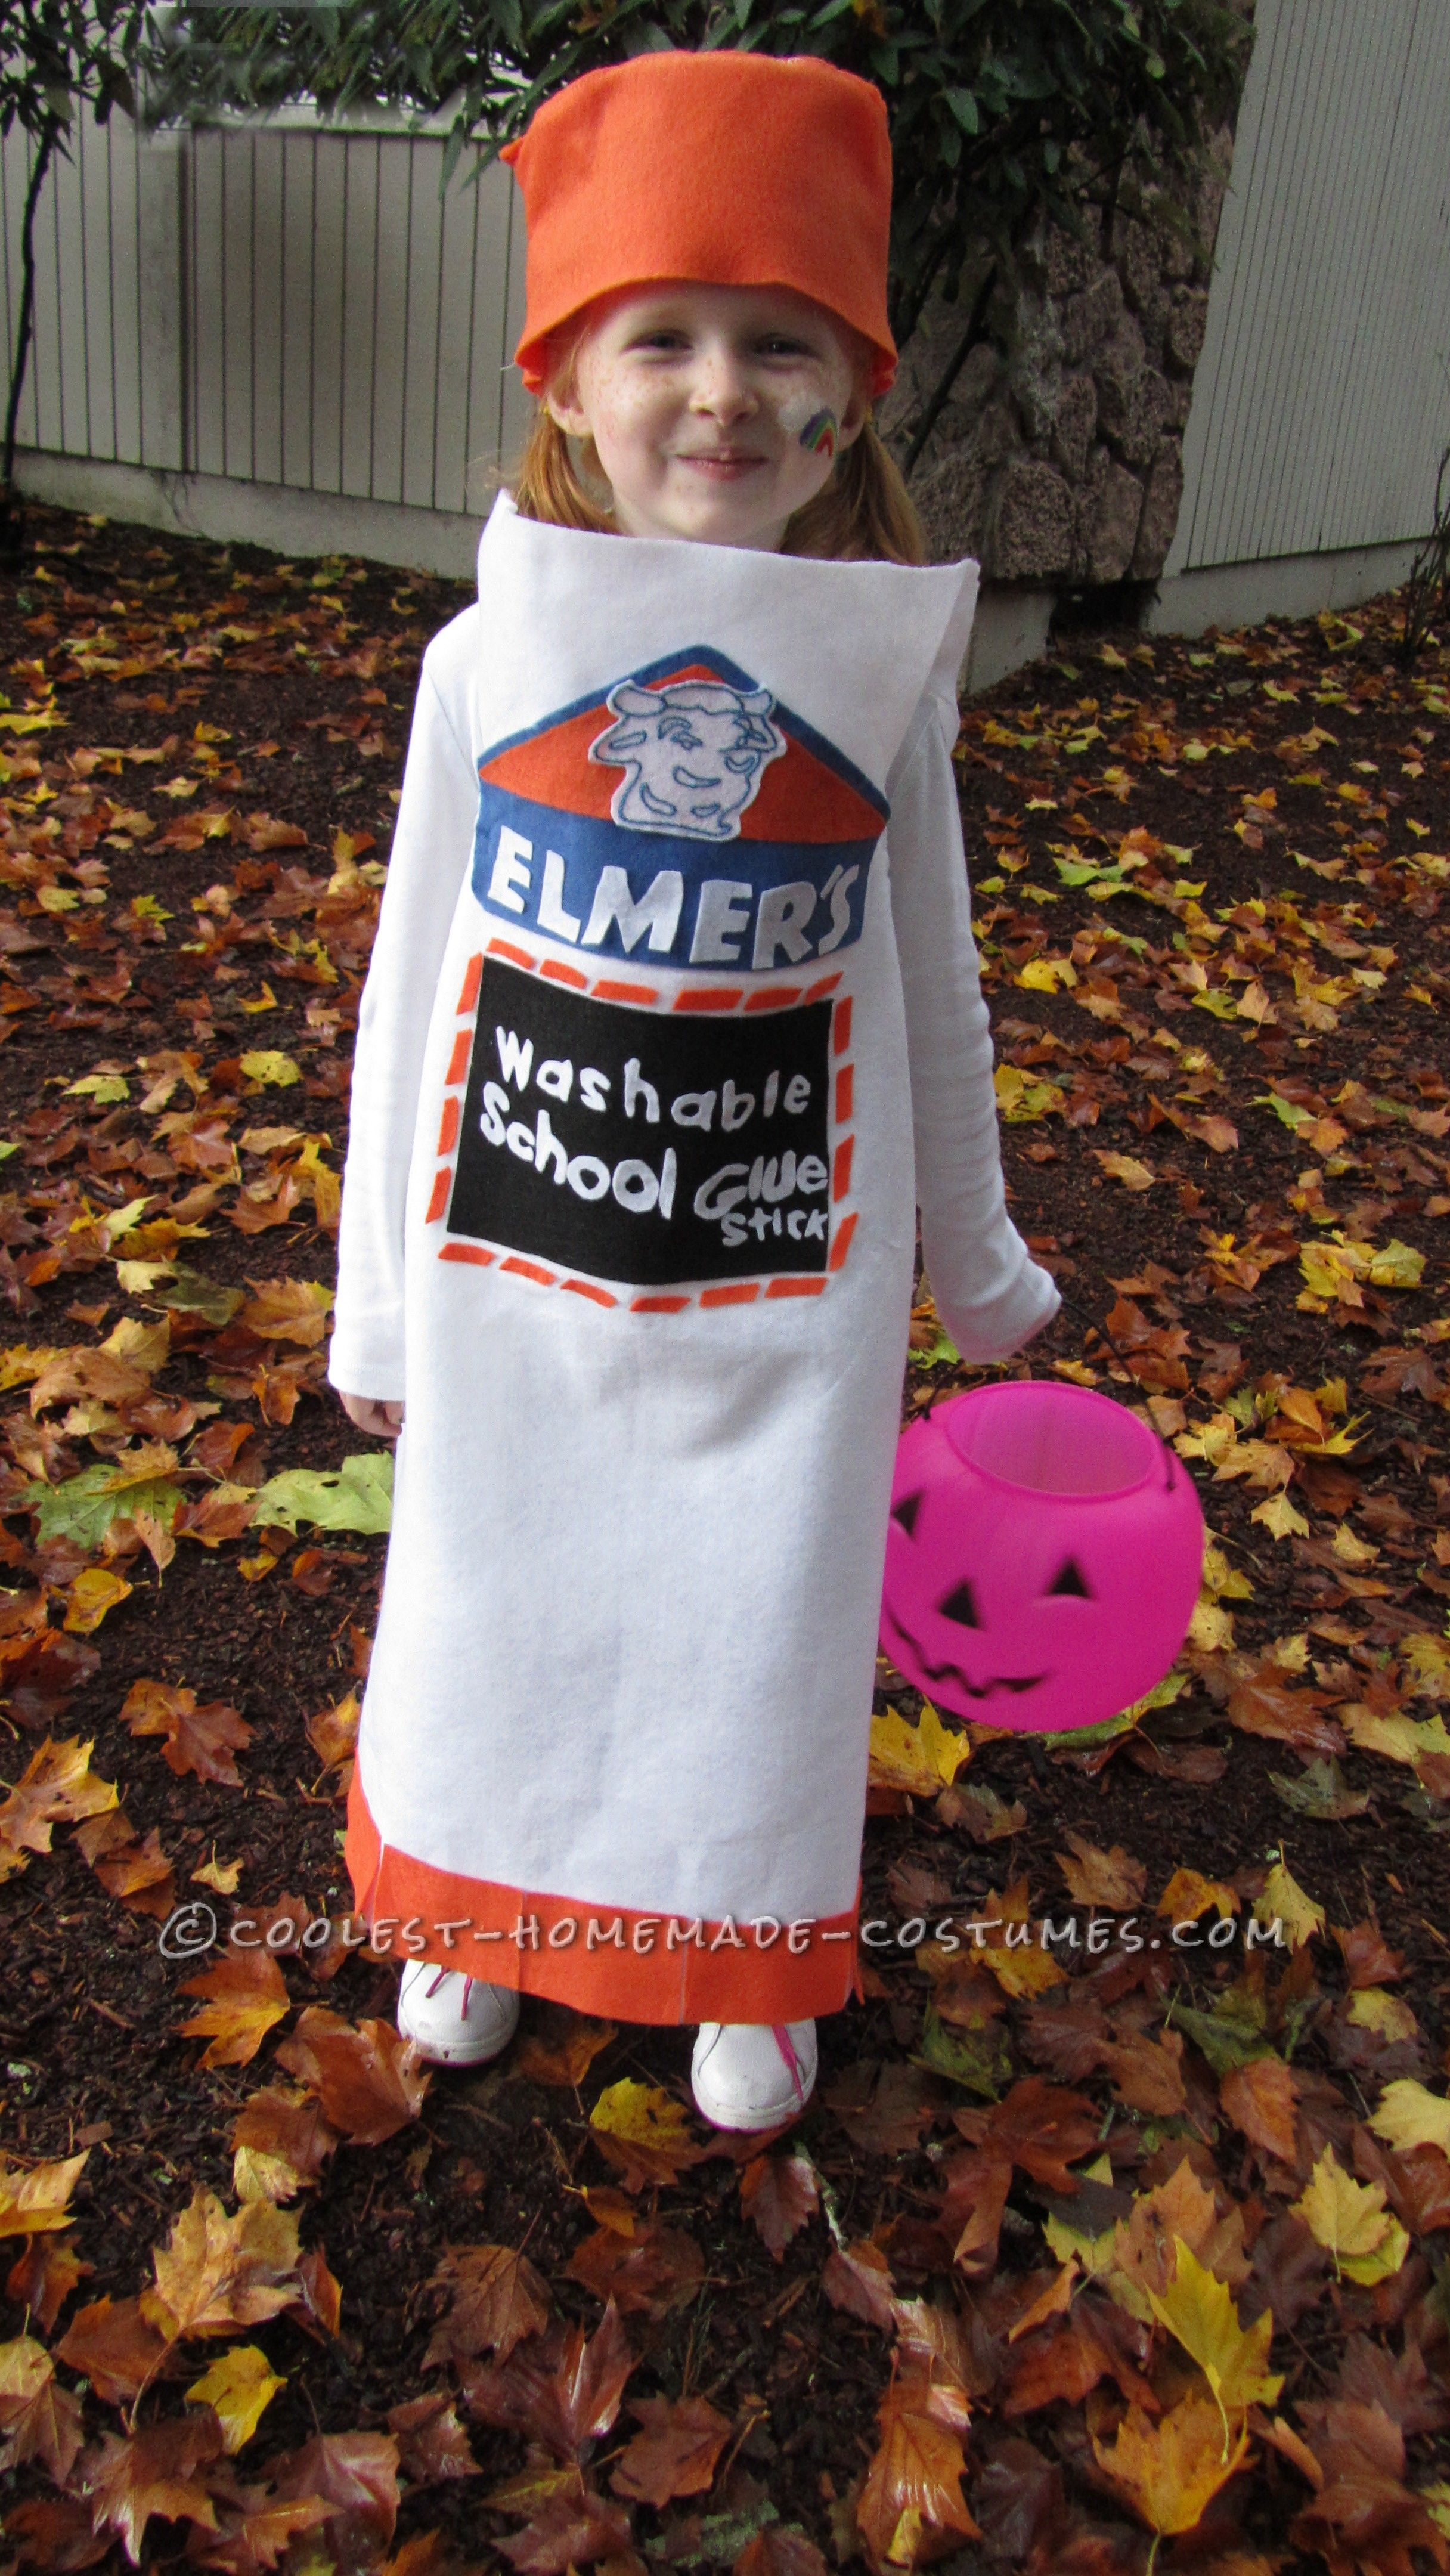 Cool homemade elmer 39 s glue stick costume for a girl for Awesome halloween costumes for kids